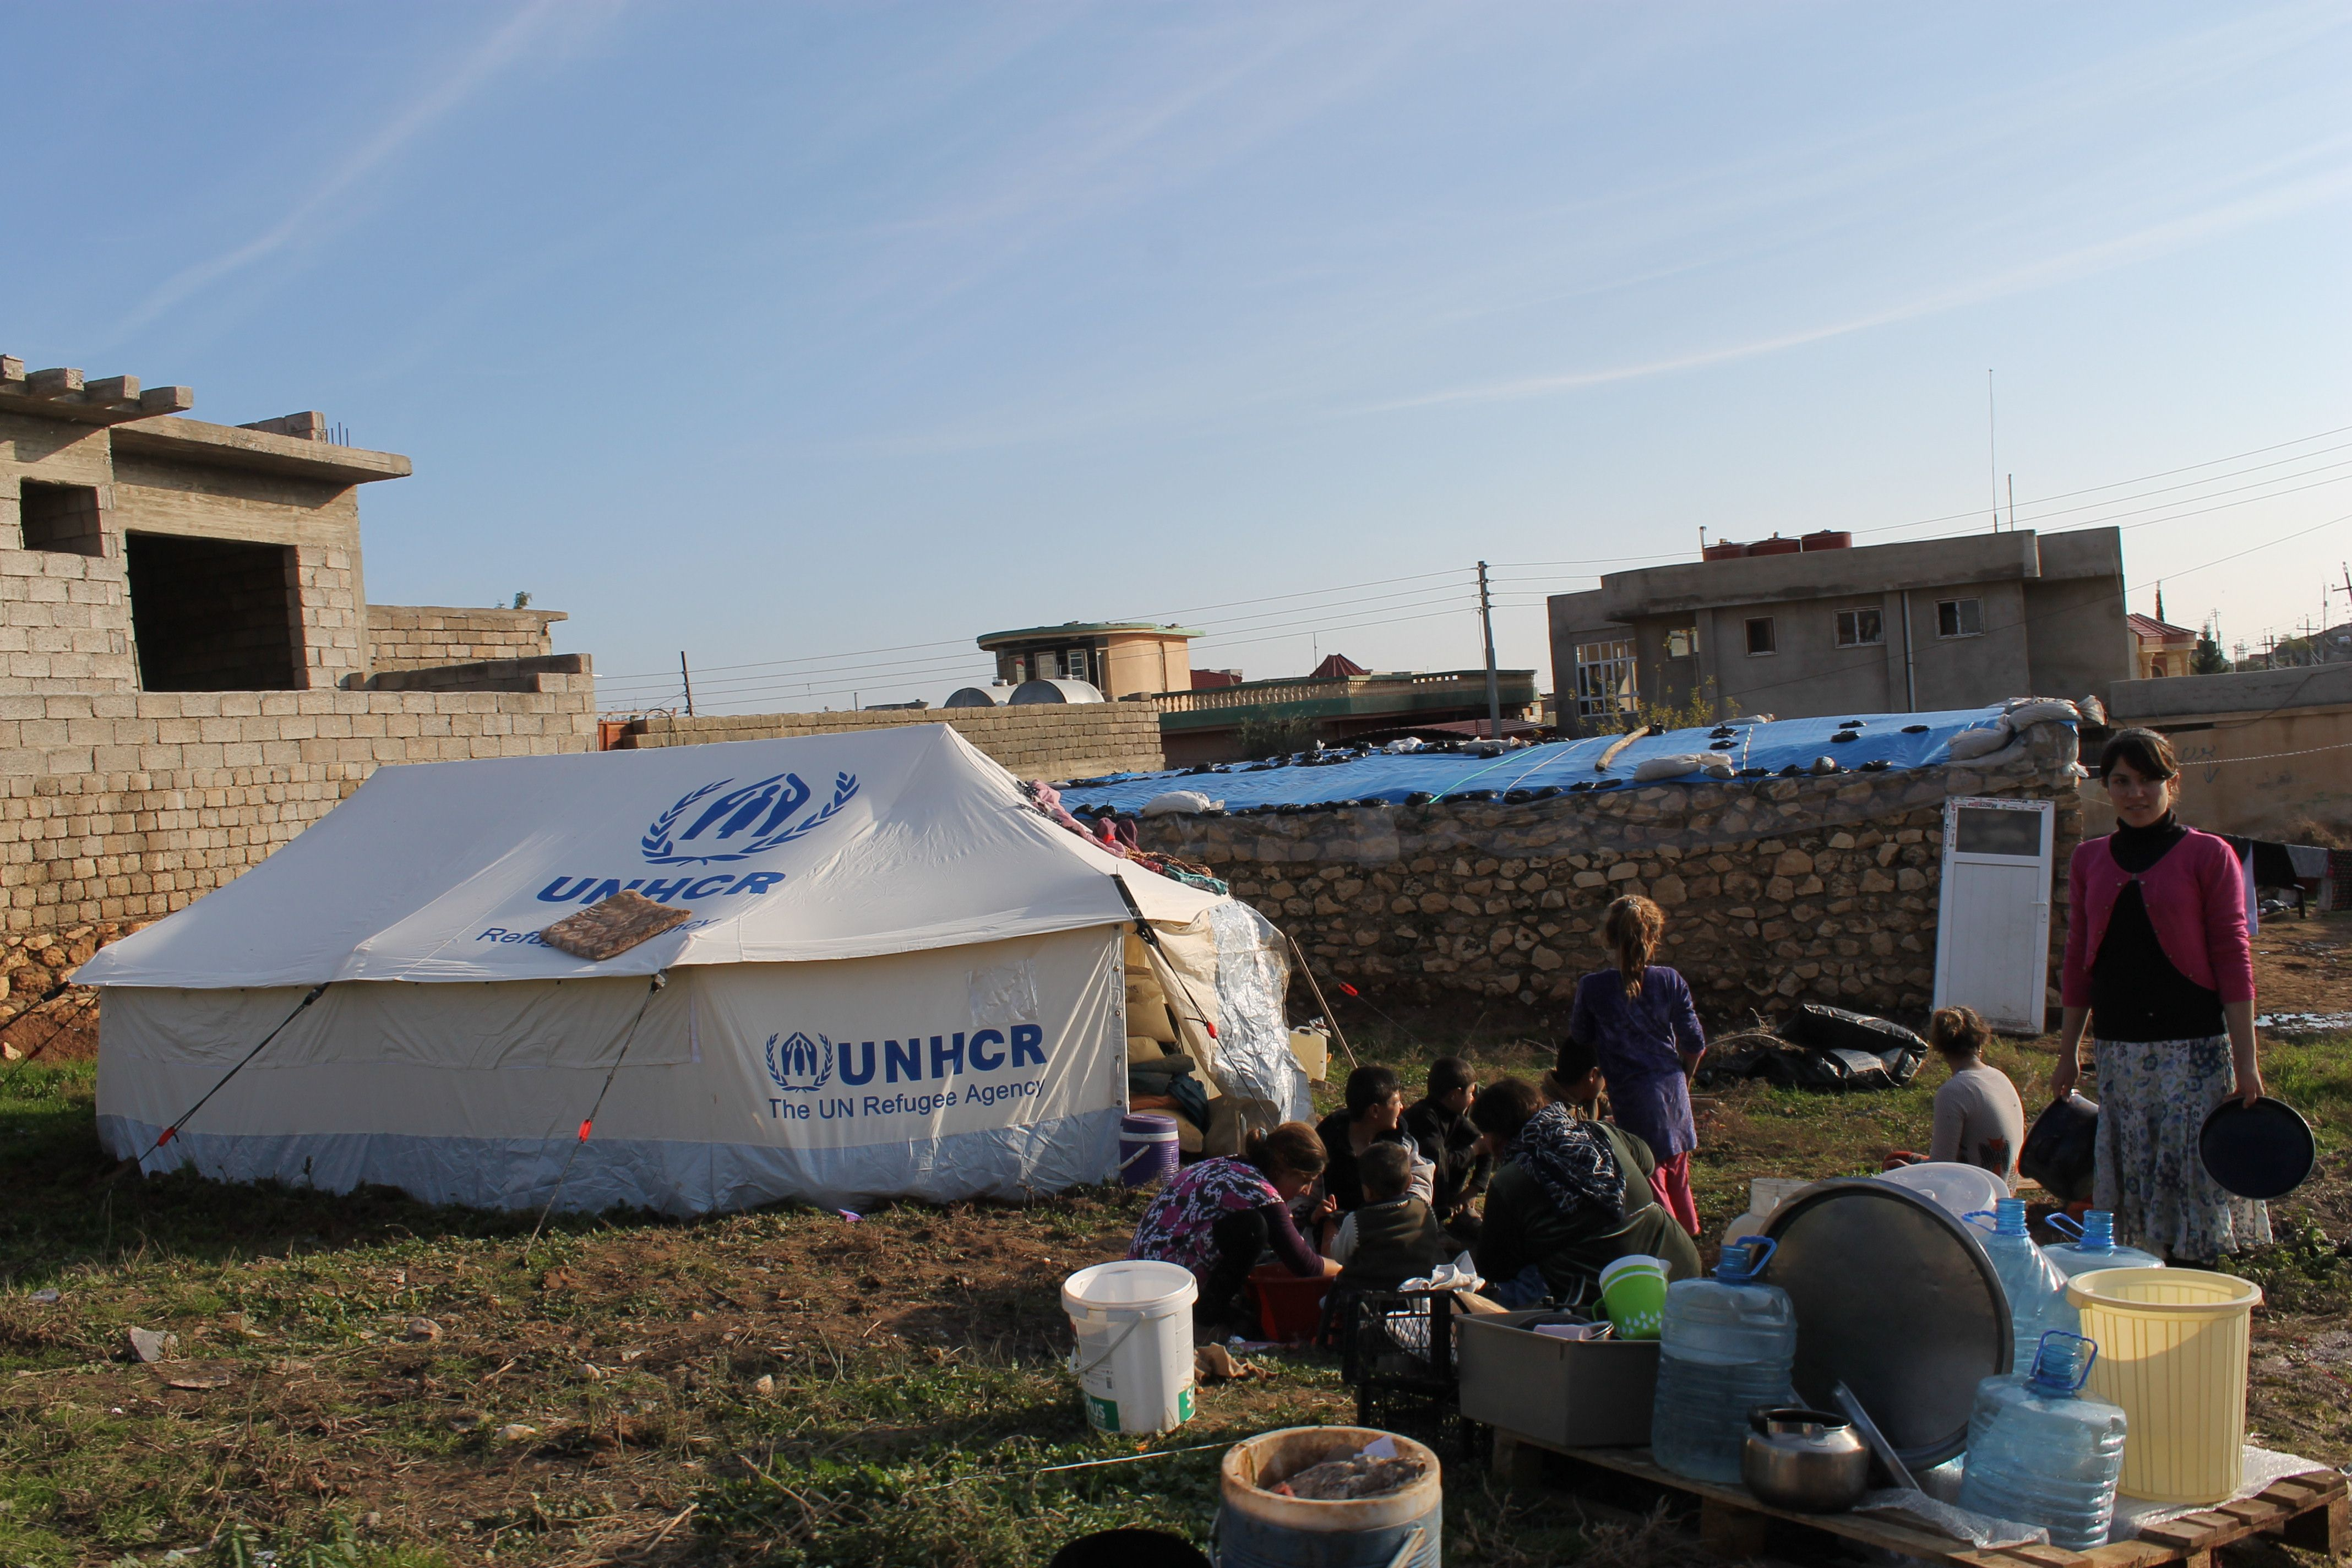 International aid organizations are working hard to provide shelter and basic staples for refugees flooding into Iraqi, Kurdistan. Spirit of America is diligent about coordinating with them to make sure we are not duplicating efforts but rather meeting needs that would otherwise go unmet, like providing rubber boots for children. #ISIS #refugees #Iraq #Kurdistan #internationalaid #humanitarian #SpiritofAmerica #SoA #boots #children